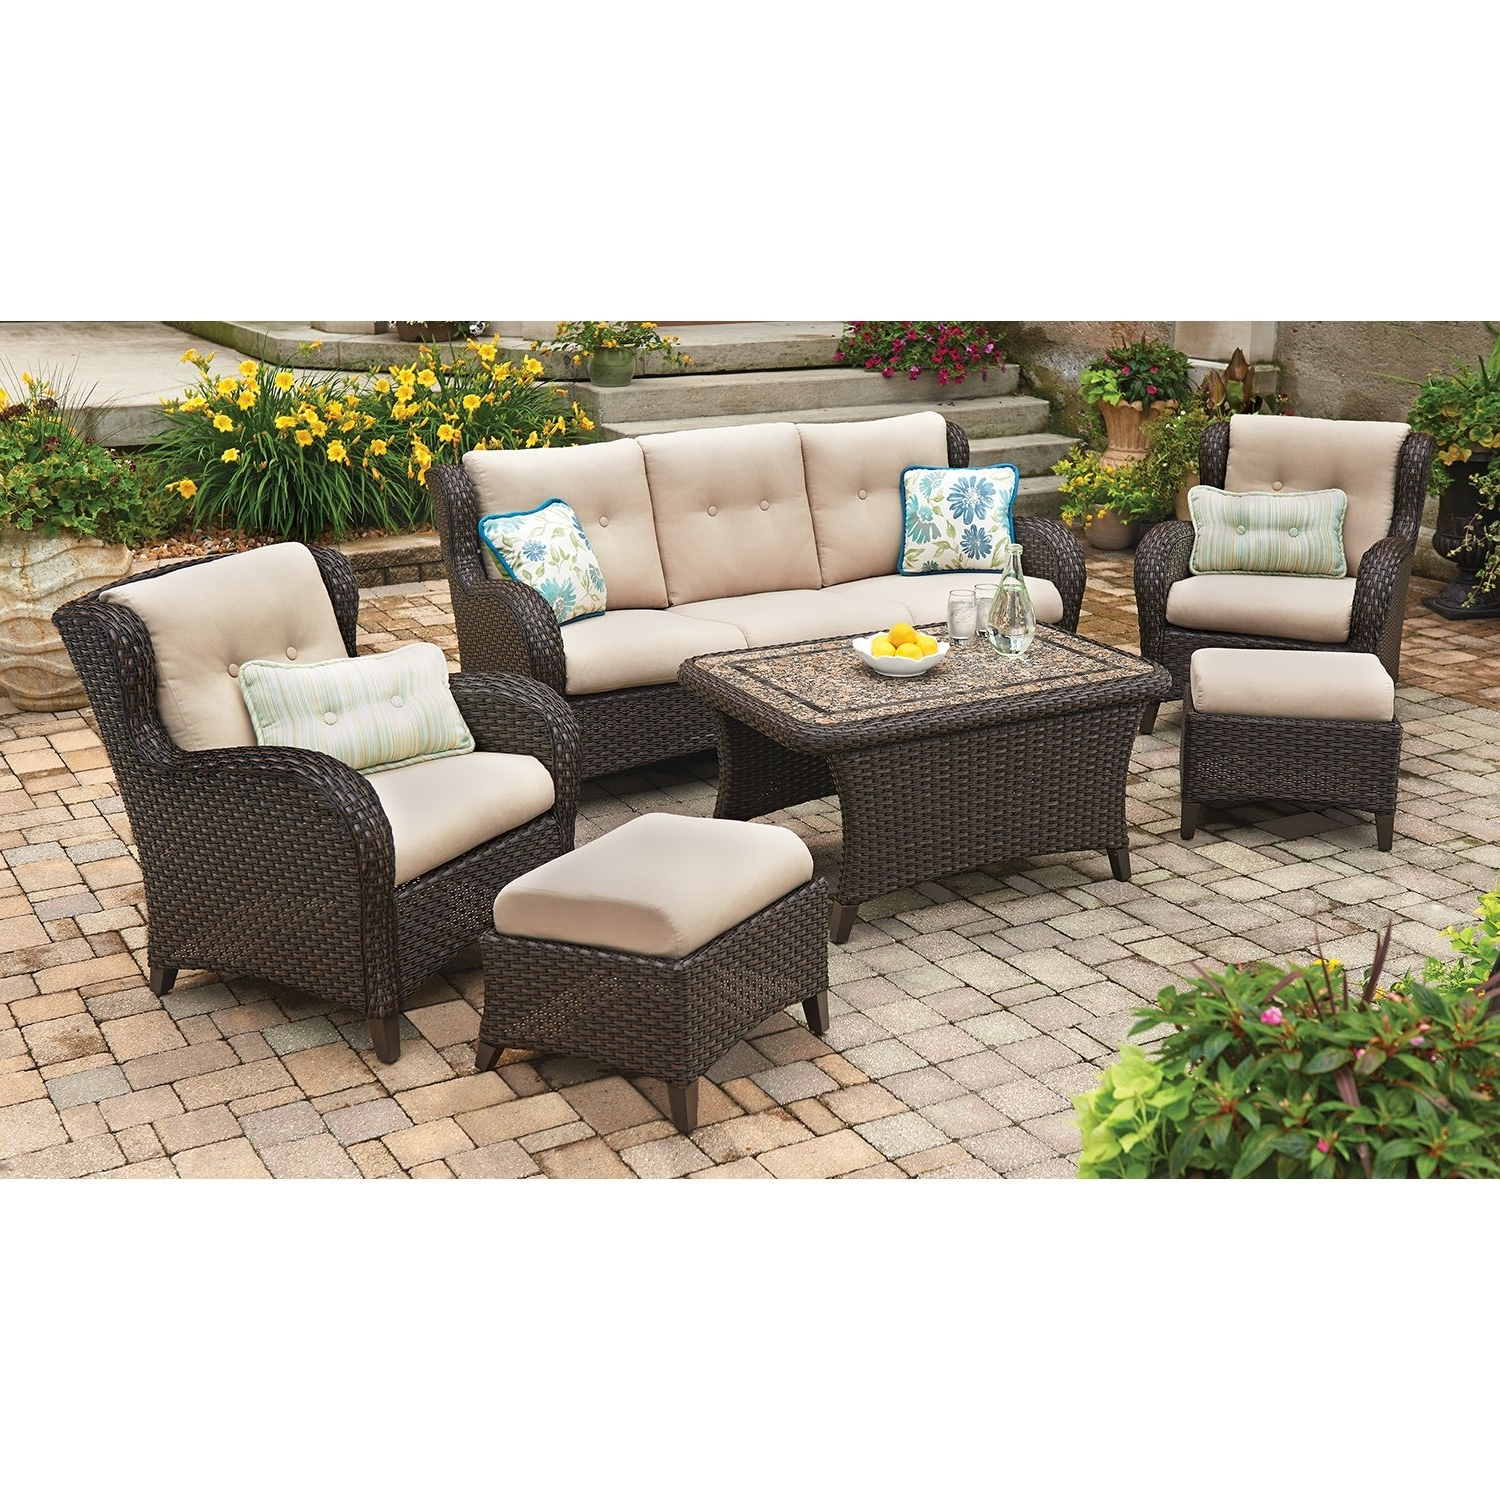 Member's Mark Heritage 6 Piece Deep Seating Set With Premium Throughout Favorite Sam's Club Outdoor Chaise Lounge Chairs (View 5 of 15)